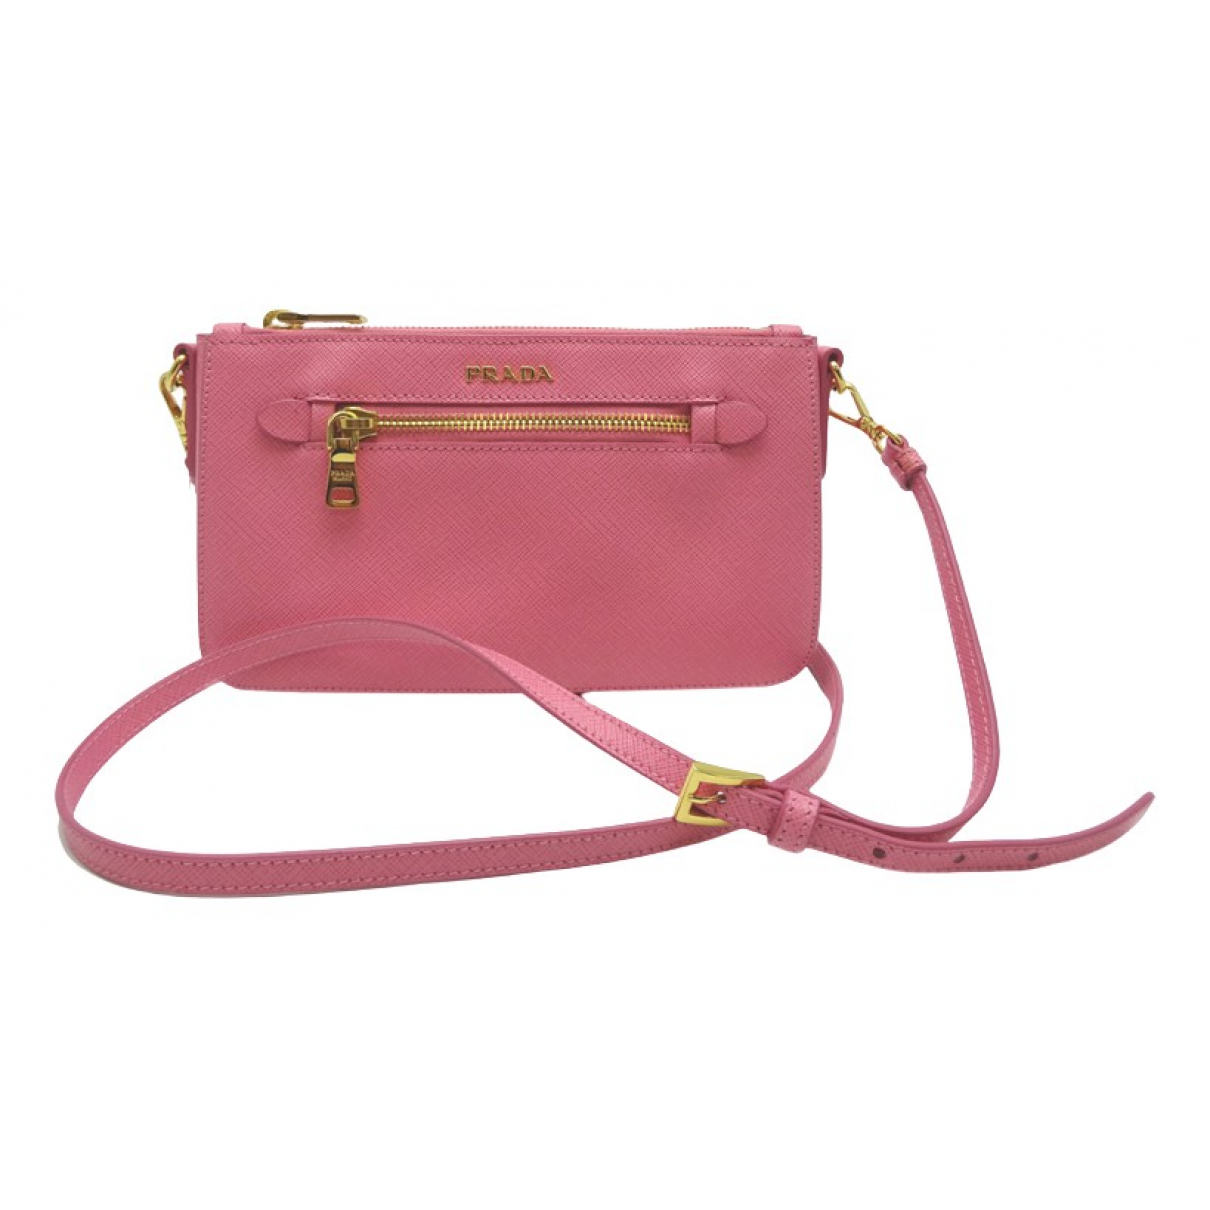 Prada \N Pink Leather Clutch bag for Women \N